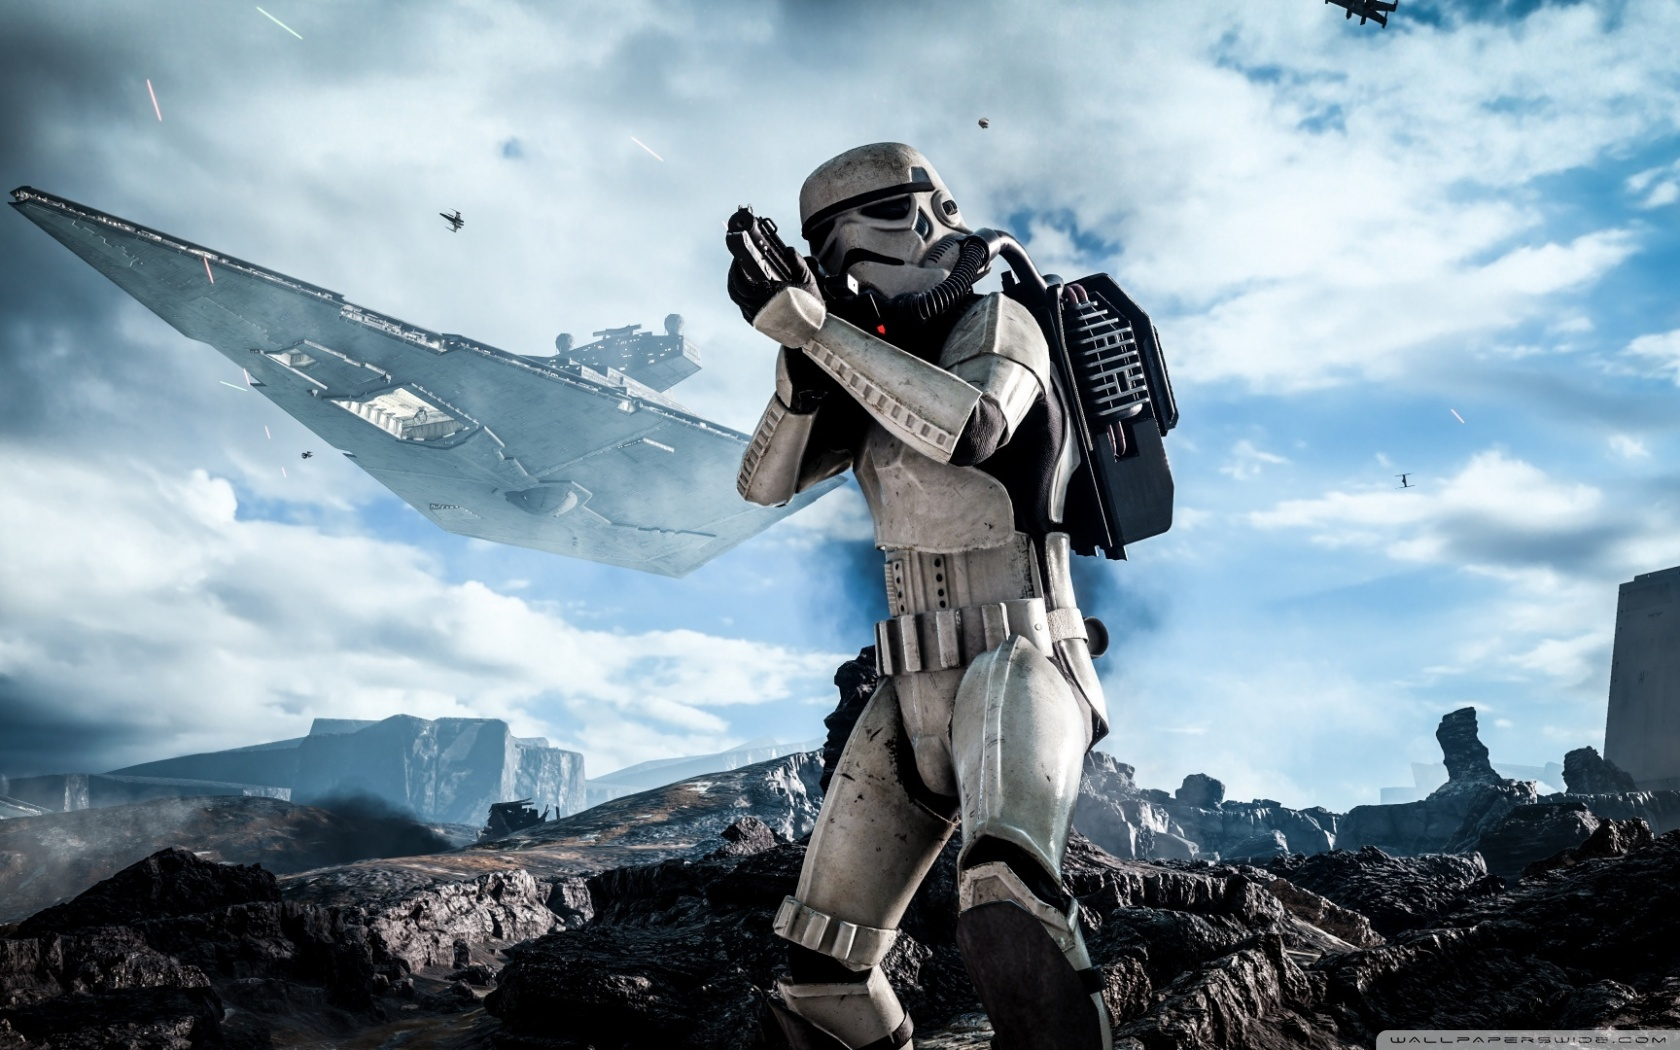 Free Star Wars Battlefront Stormtrooper phone wallpaper by suth3rnang3l